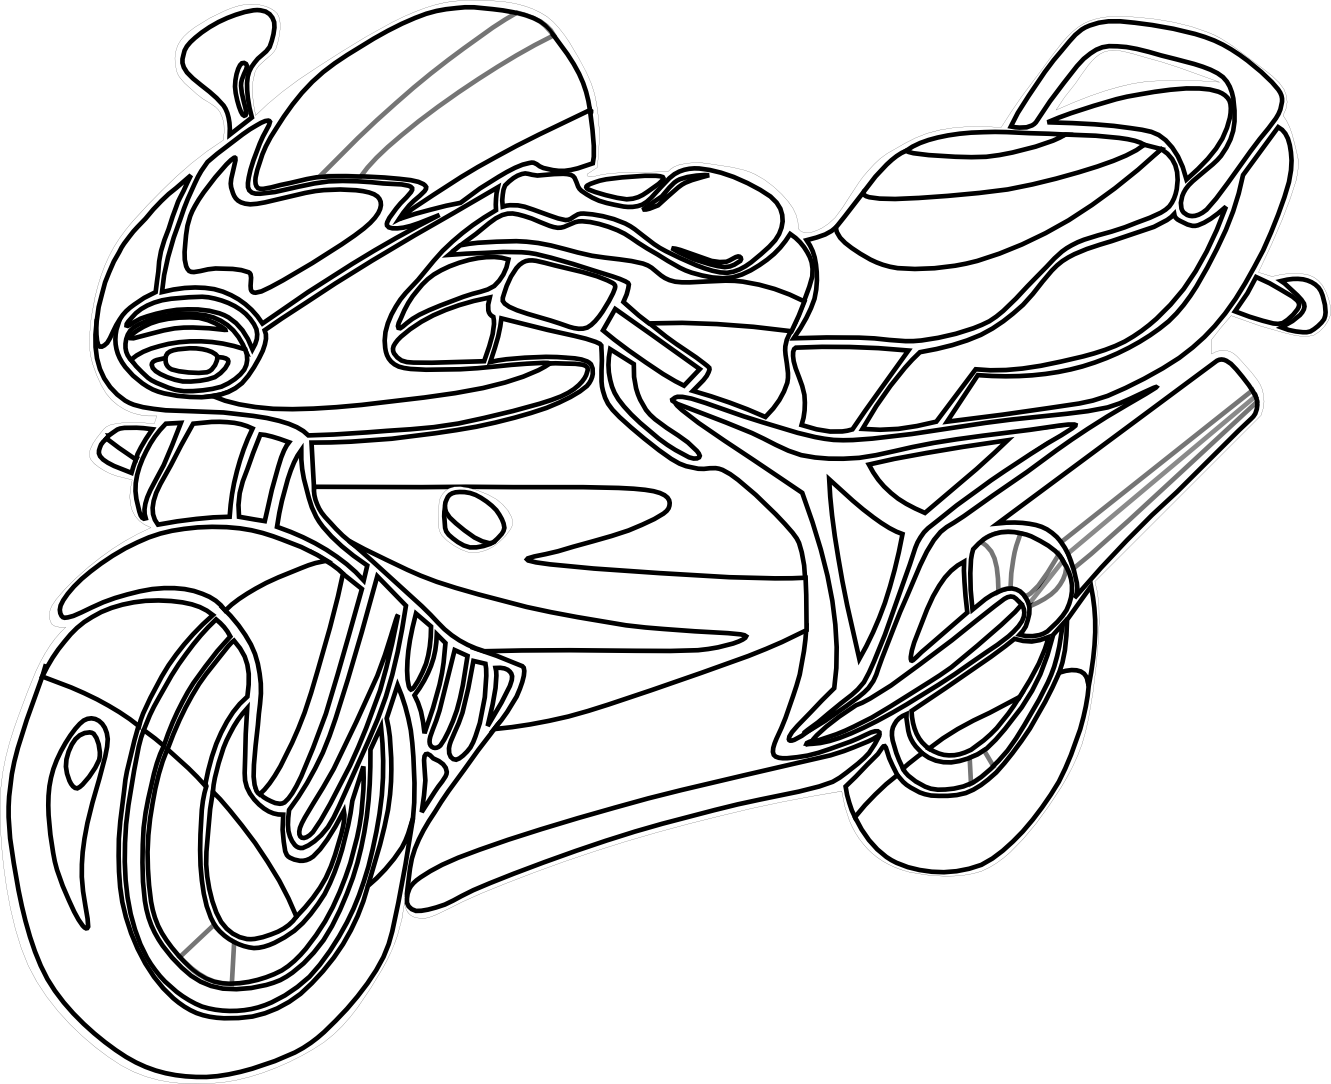 clipart free stock Motorcycle panda free images. Transportation clipart black and white